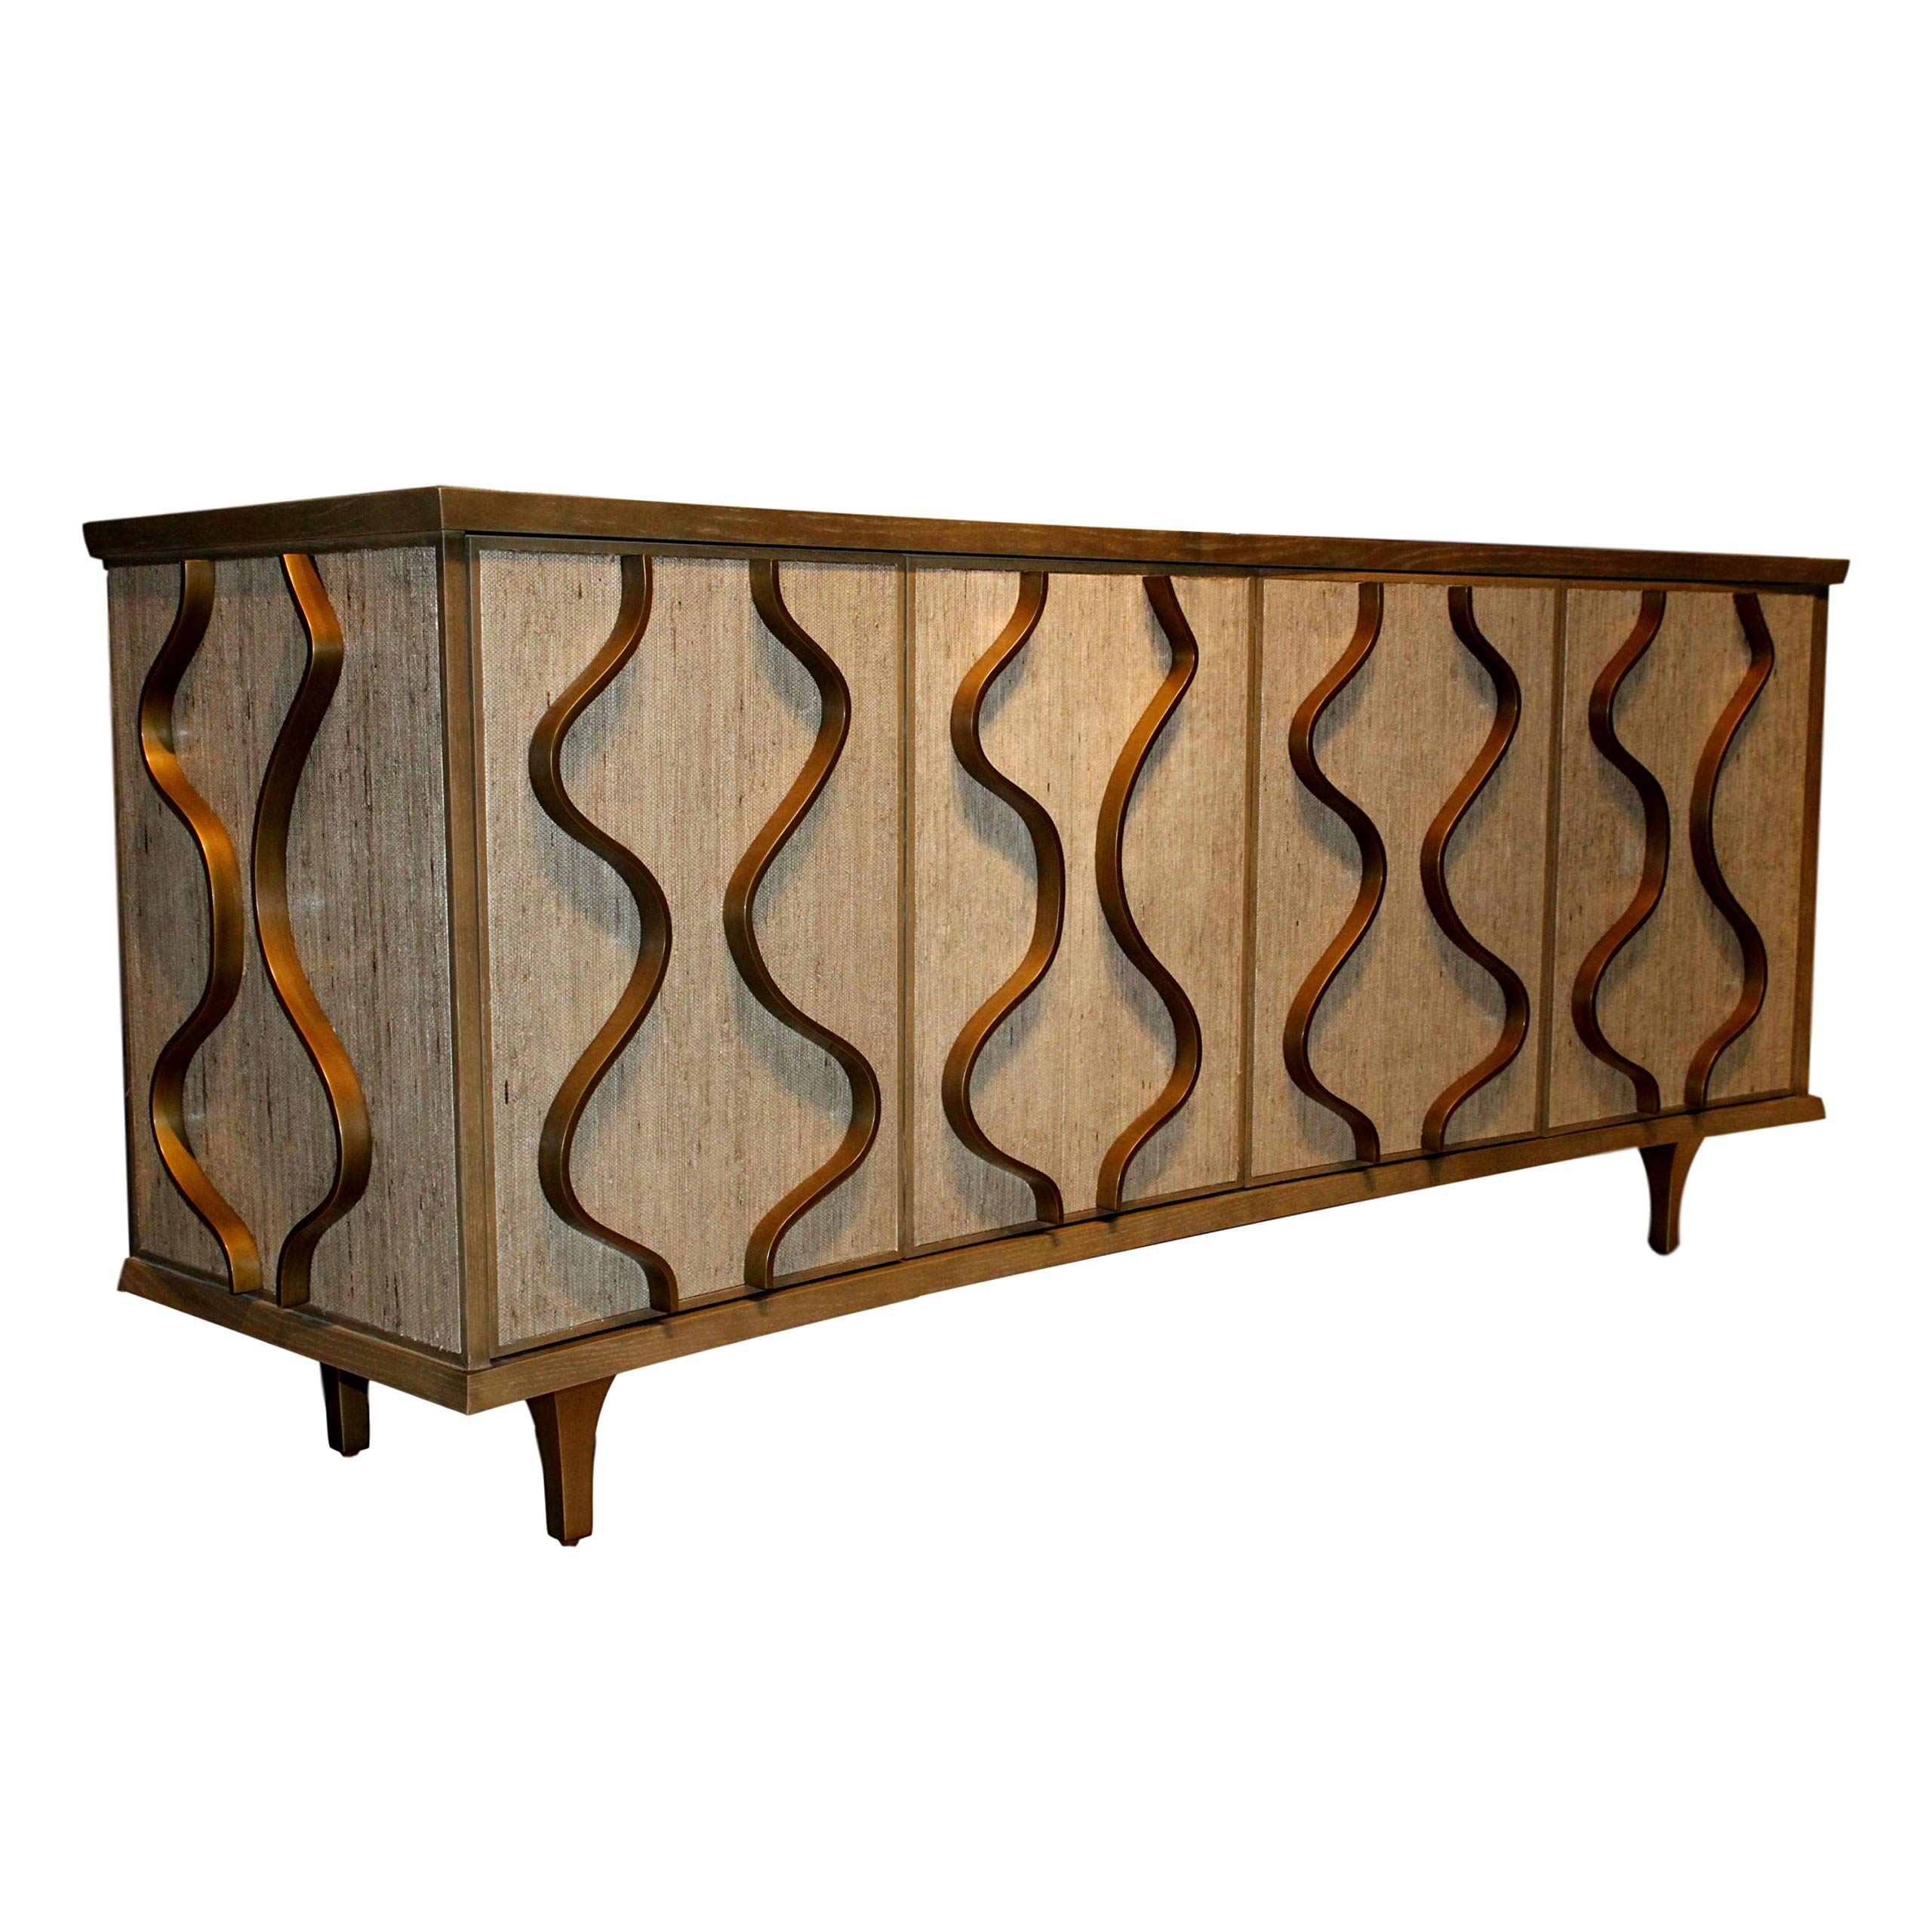 Global Views Elegant Mid Century Modern Curved Media Cabinet | Wood Wave Abstract Sculpted by Global Views